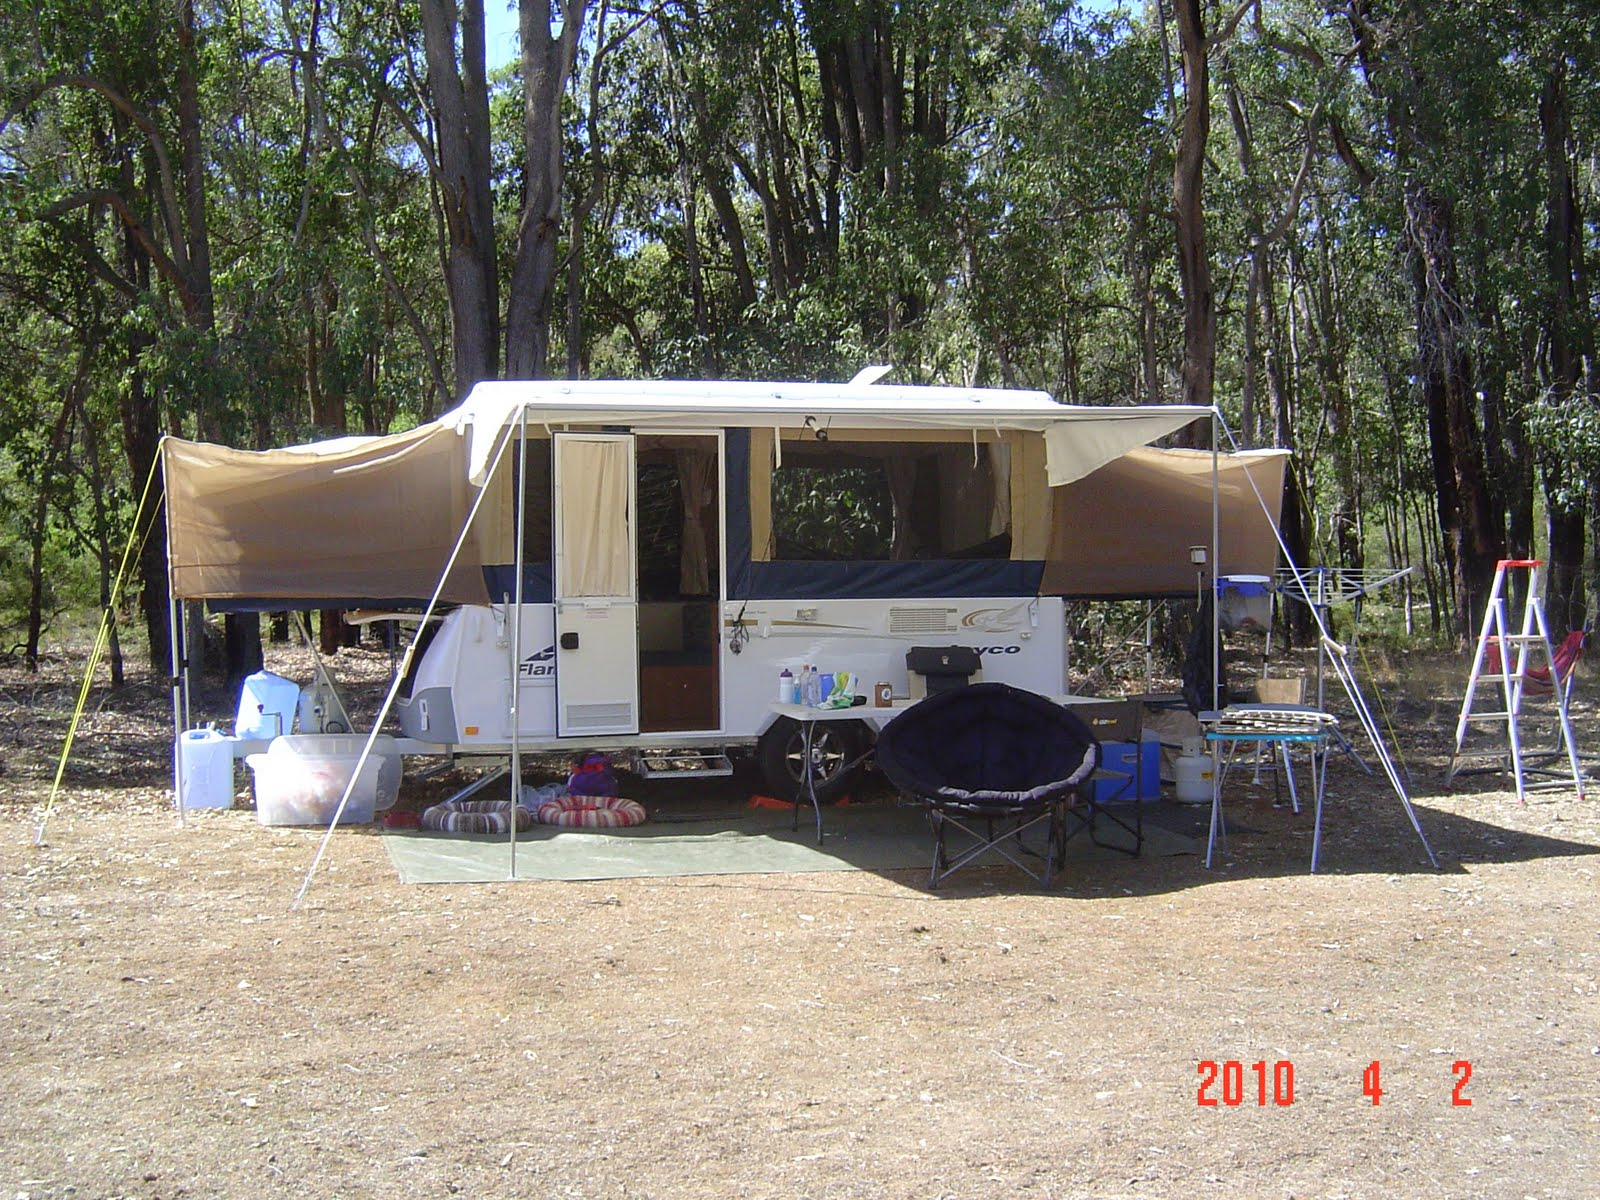 Camping Trailers Jayco With Brilliant Images In Thailand Kitchen Plumbing Diagram Get Domain Pictures Getdomainvidscom Model Caravans New Zealand Camper Trailer Photo Gallery